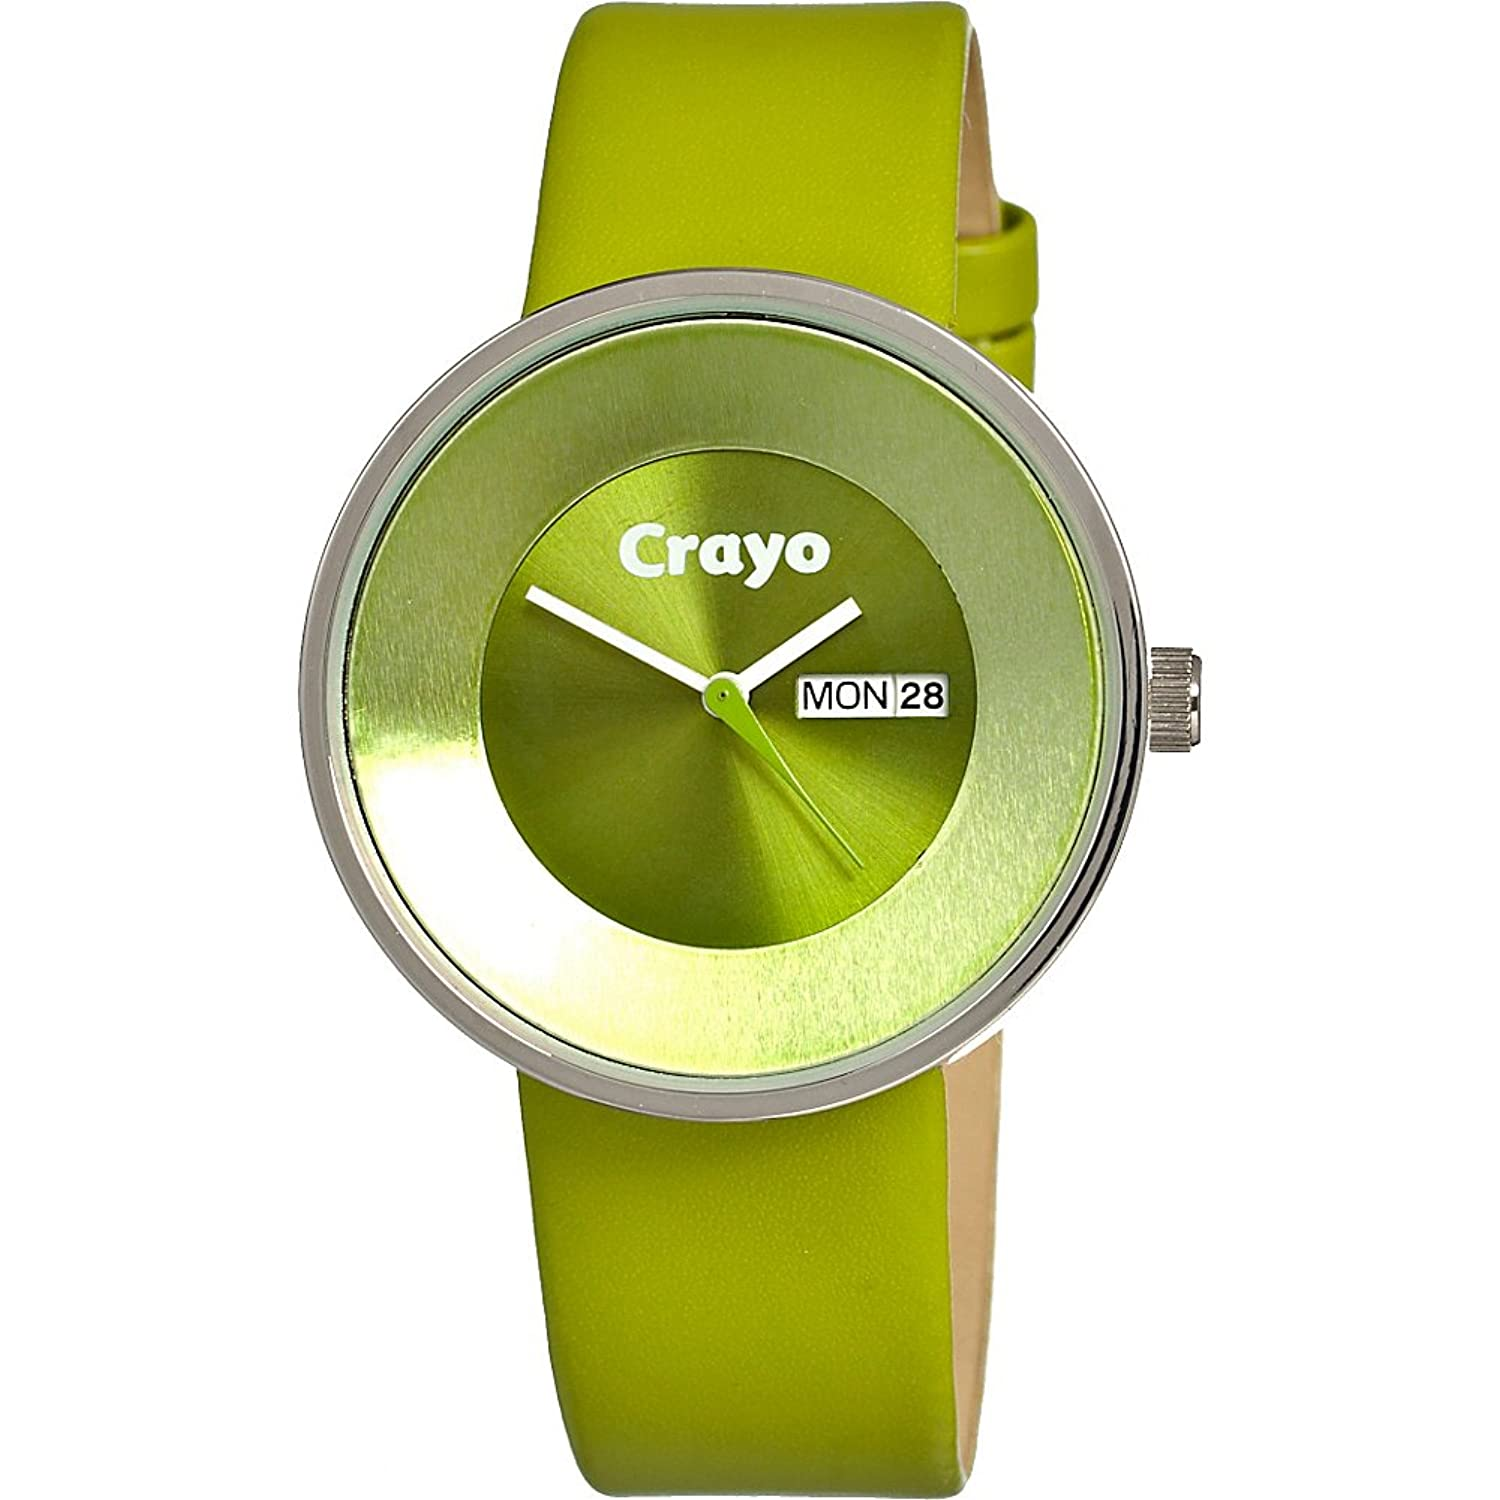 strap index face stripe ic watch teacher pagespeed green on white and xamonev time watches angled amonev